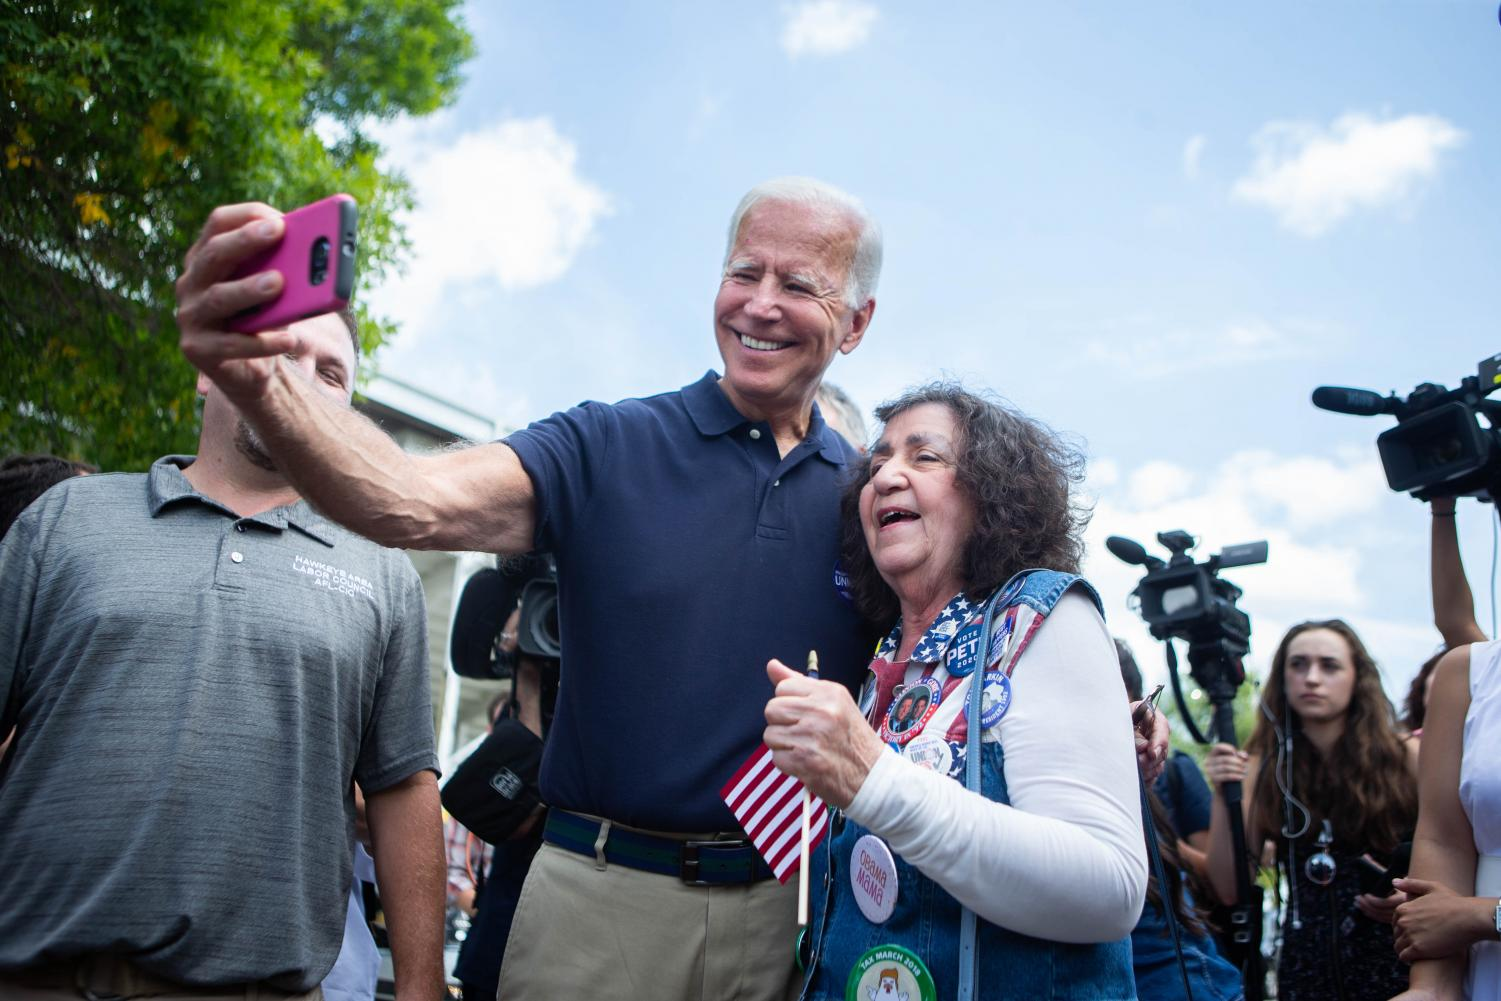 Former+Vice+President+Joe+Biden+takes+a+selfie+with+a+supporter+during+the+Hawkeye+Area+Labor+Council+Picnic+at+Hawkeye+Downs+on+Monday%2C+September+2%2C+2019.+